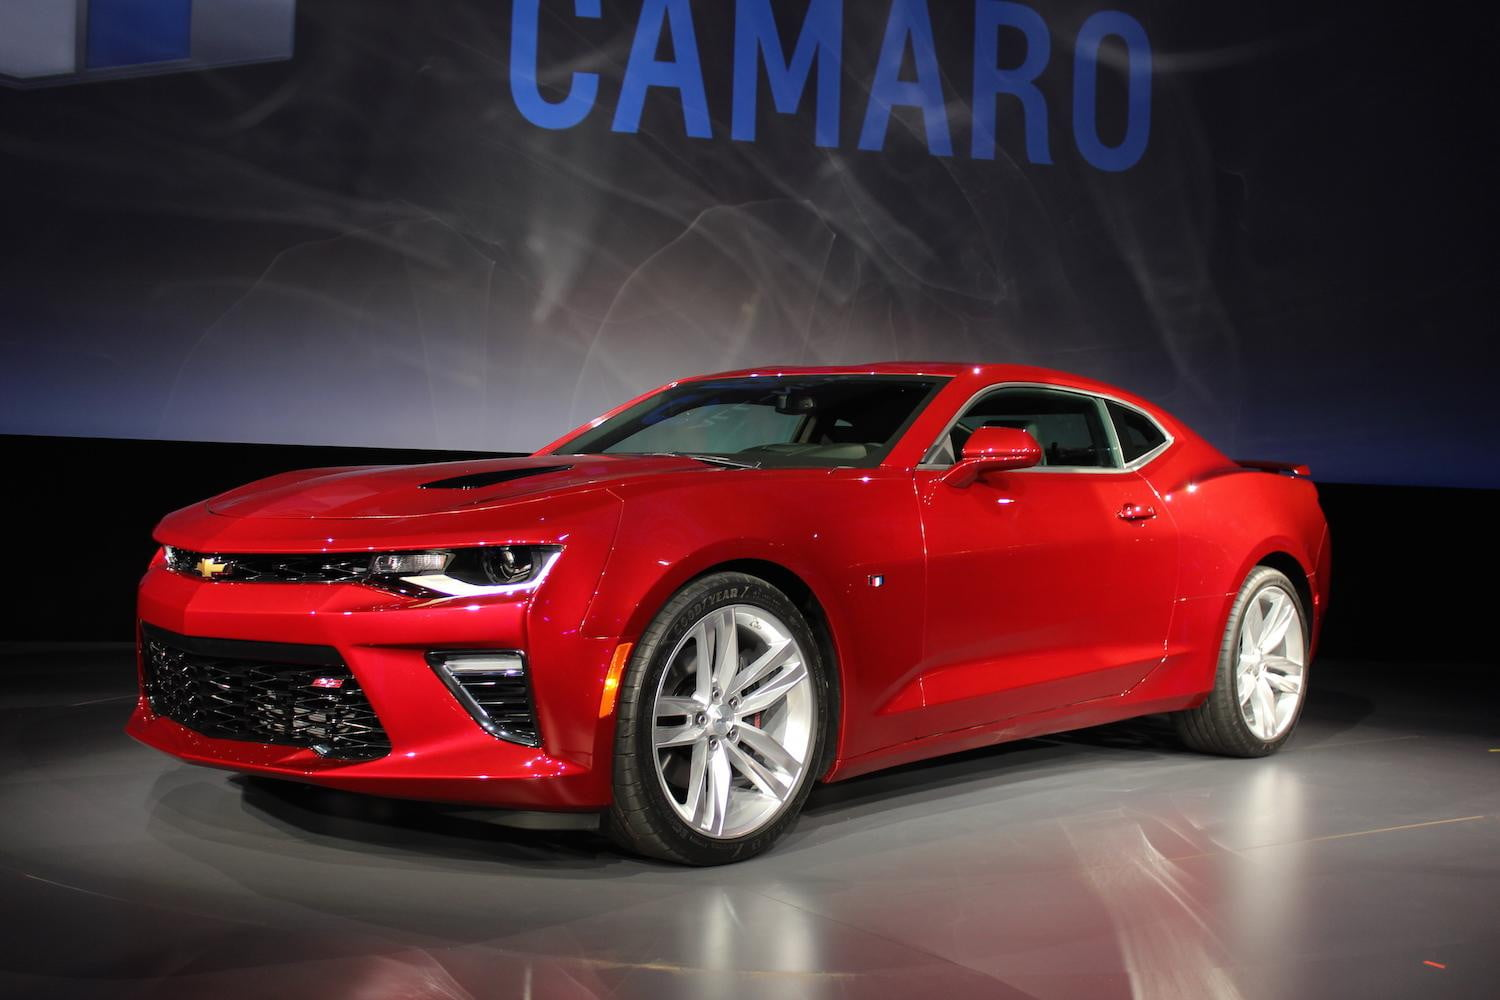 2016 chevrolet camaro impressions pictures performance digital trends. Black Bedroom Furniture Sets. Home Design Ideas